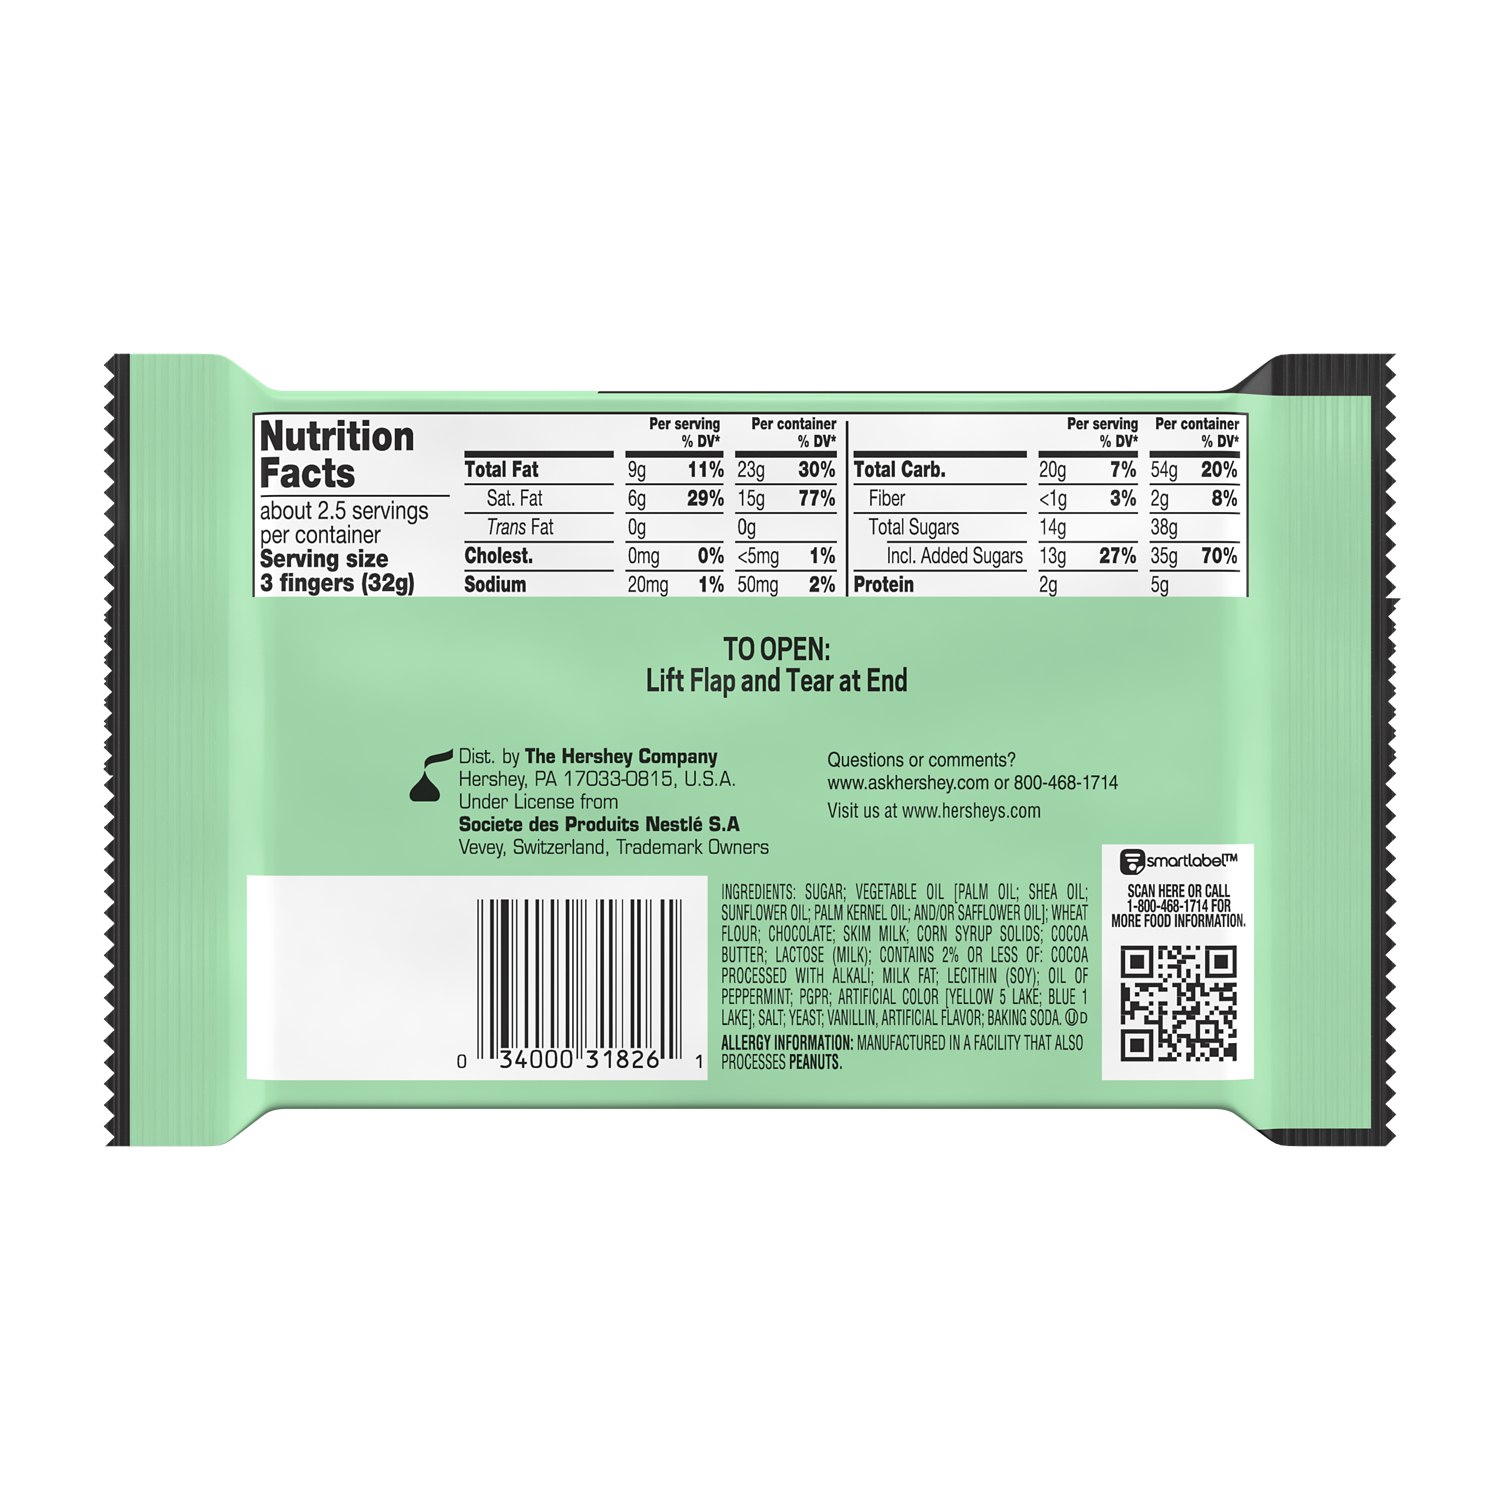 KIT KAT® DUOS Mint and Dark Chocolate King Size Candy Bar, 3 oz - Back of Package